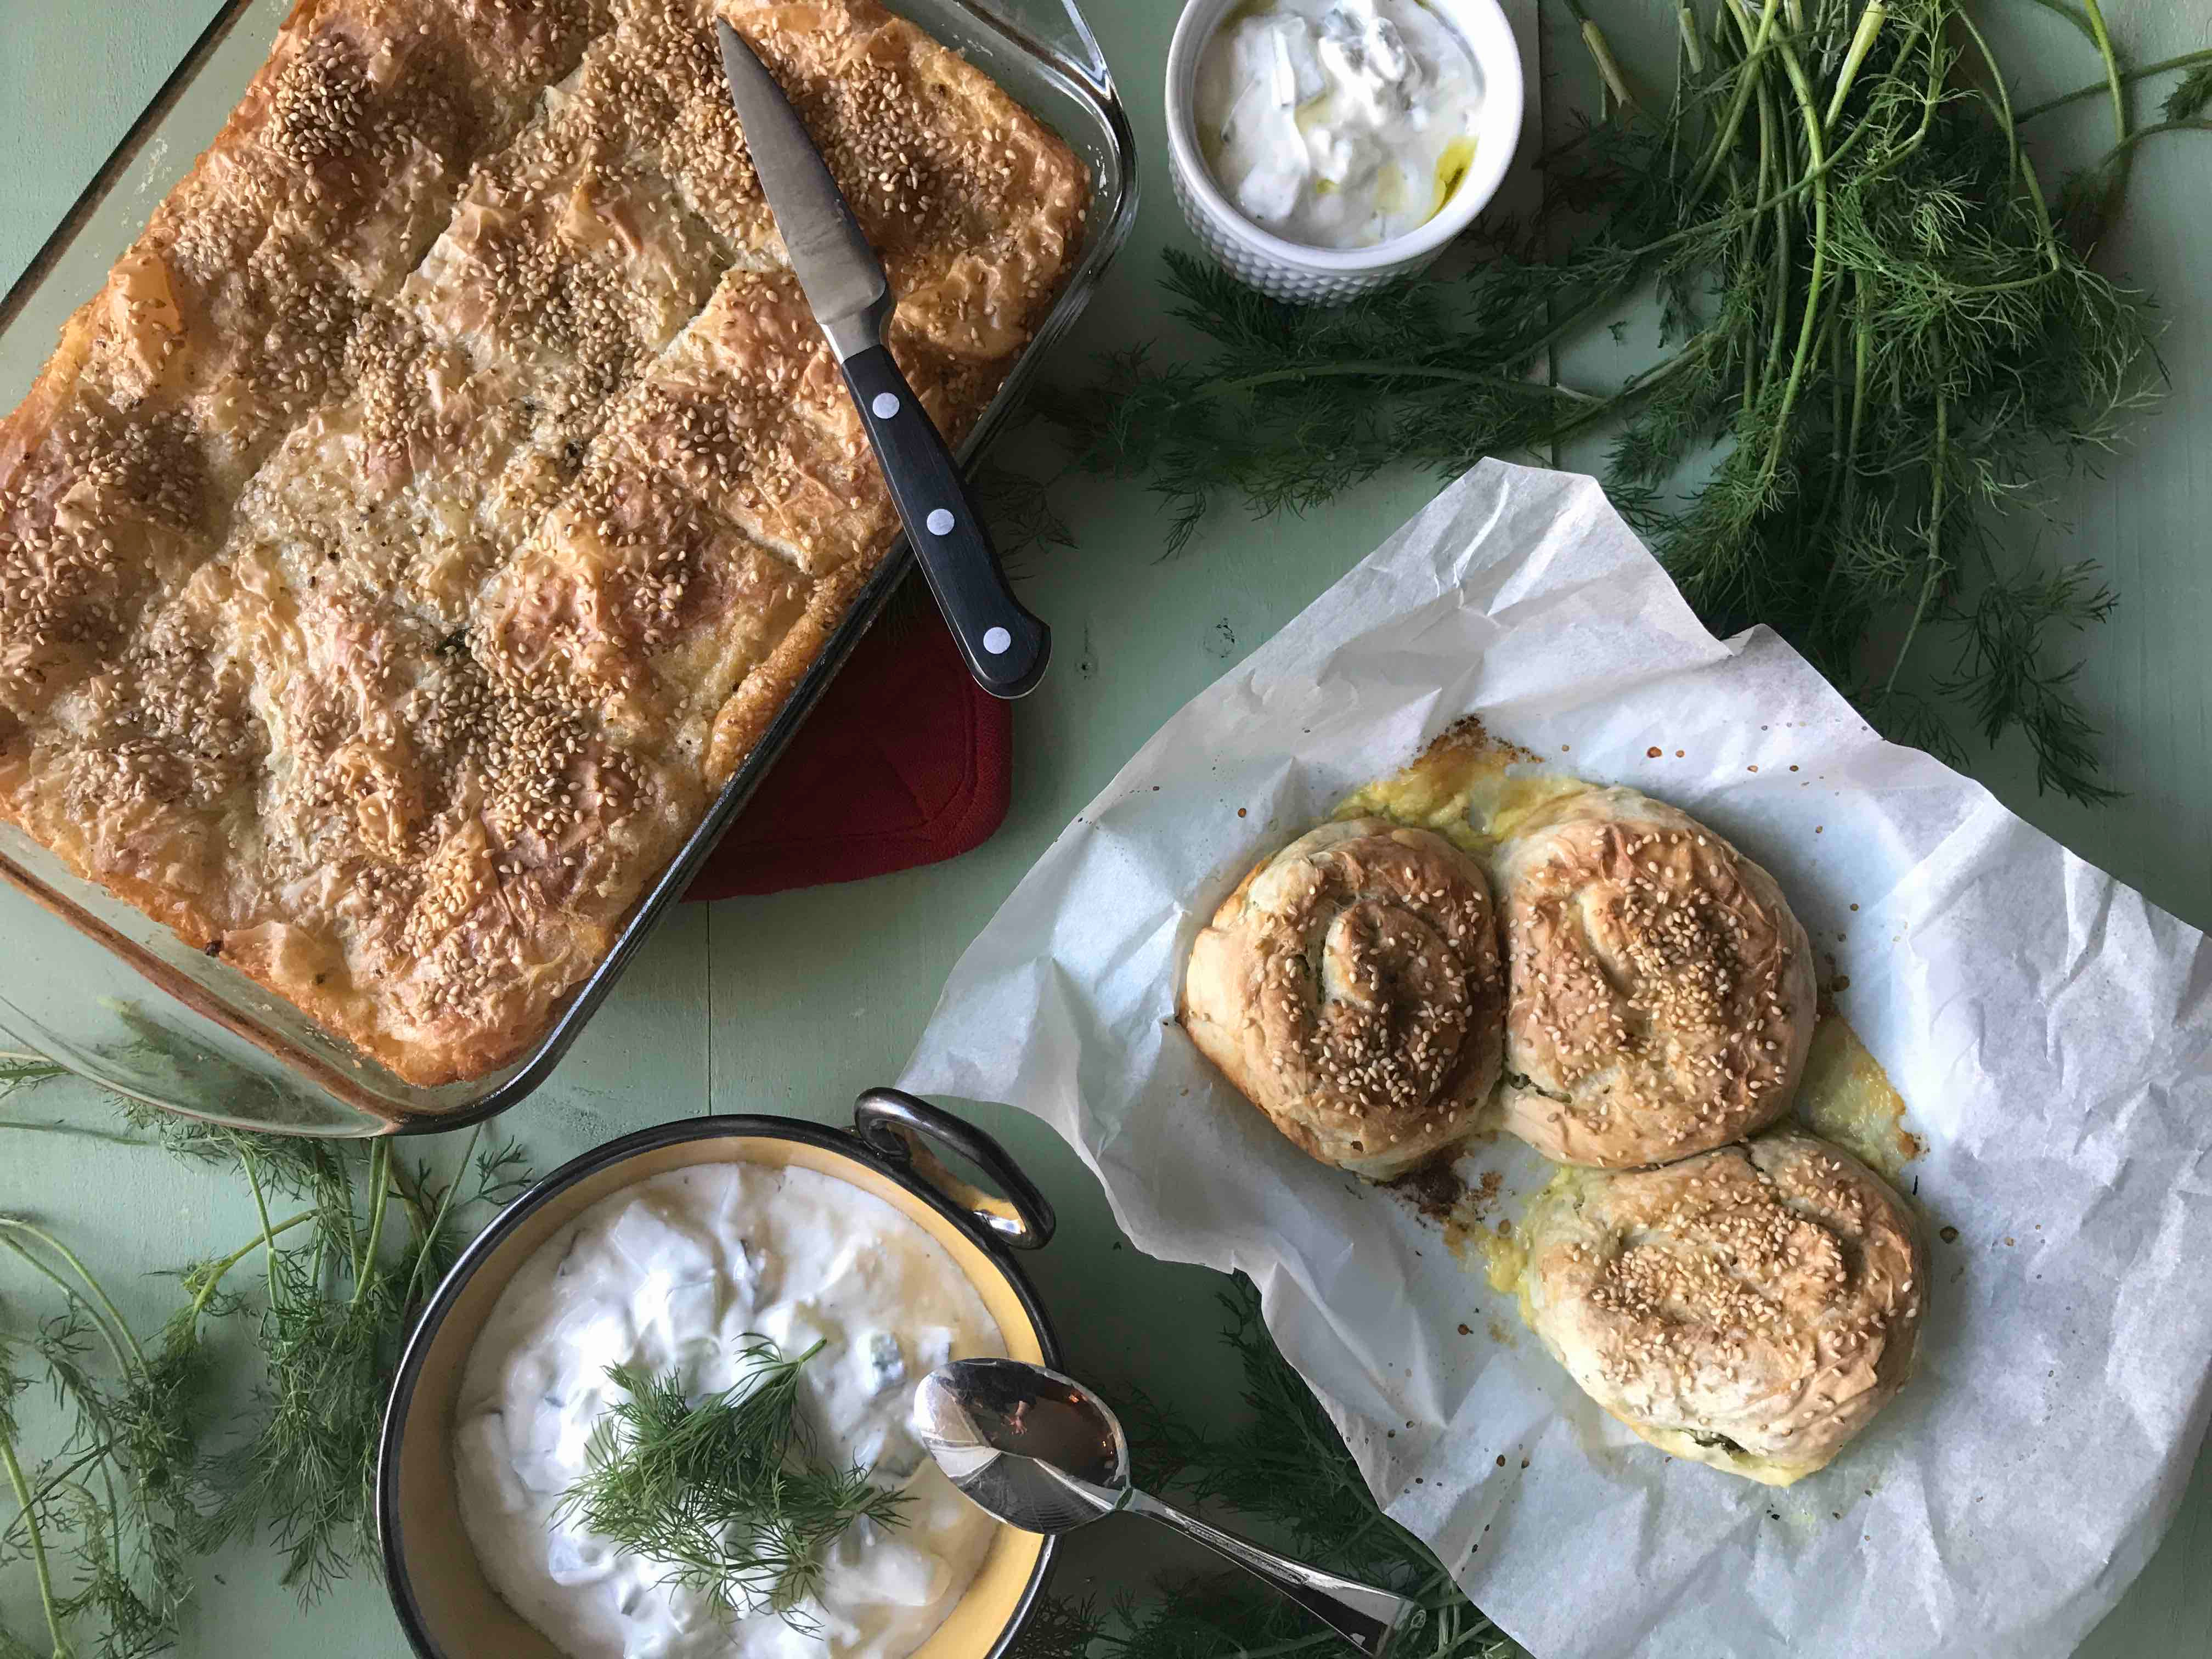 Turkish & Mediterranean Cooking Classes | The Chef & The Dish